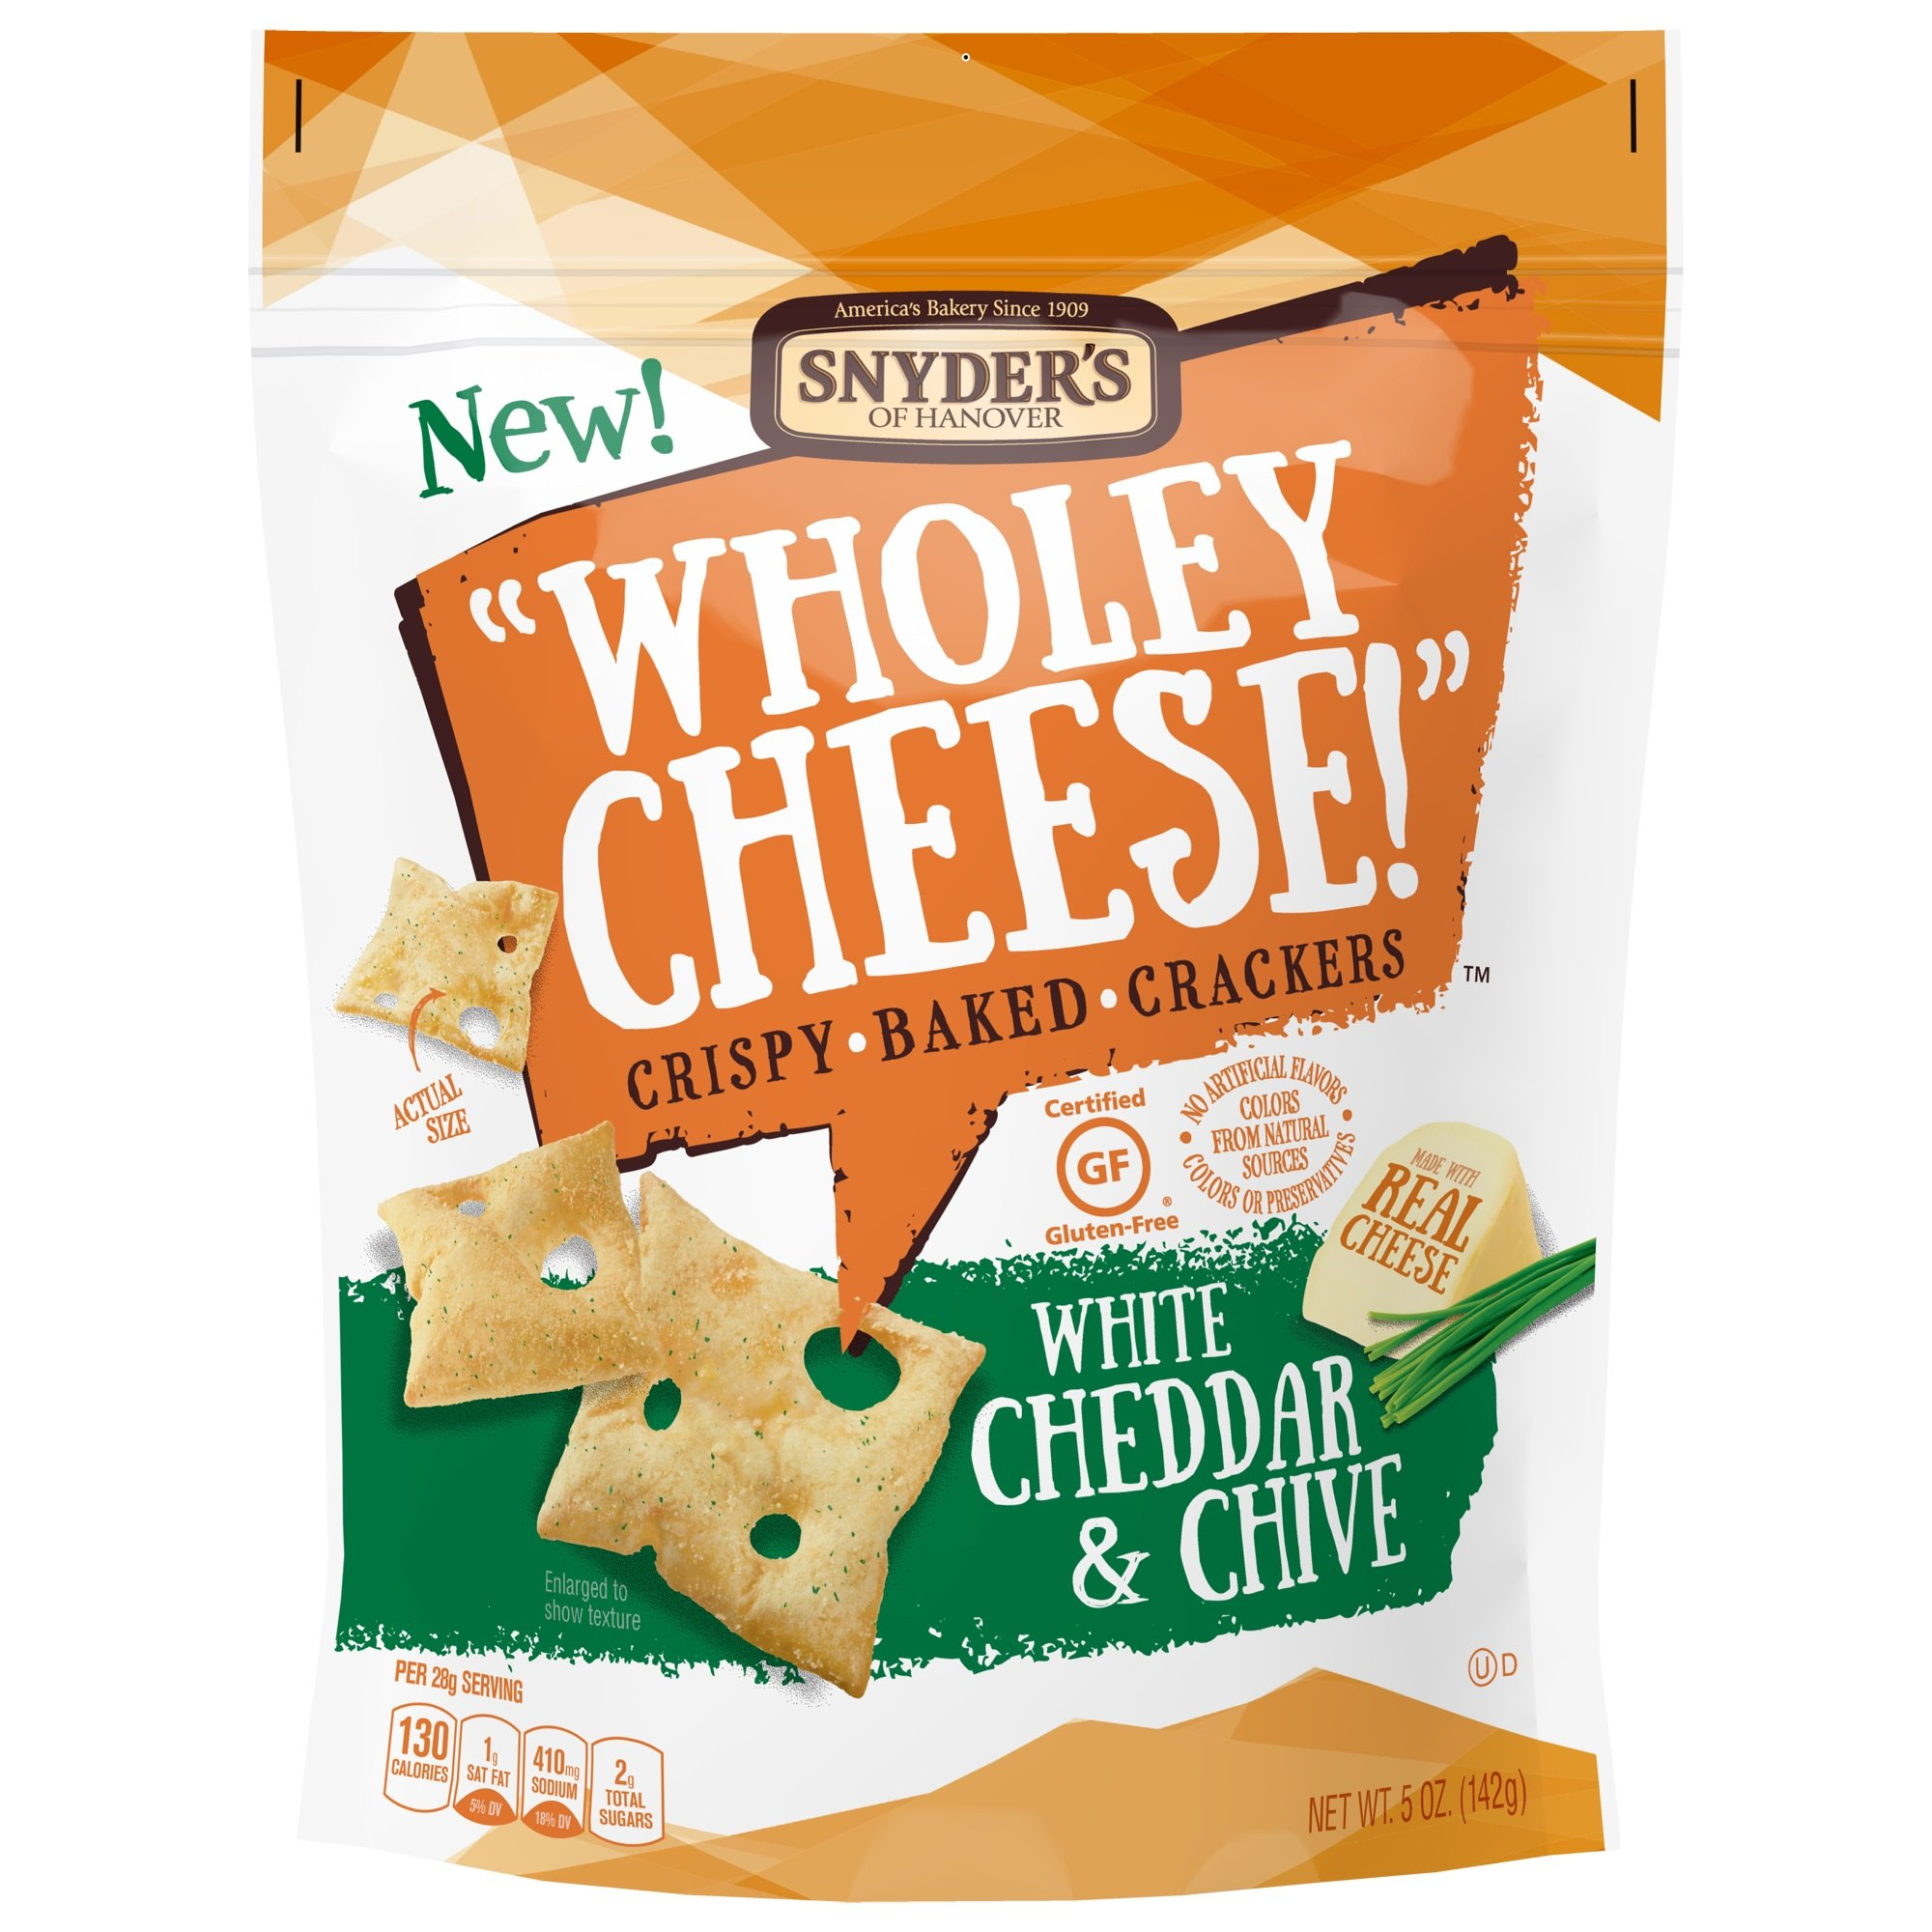 Snyder's of Hanover Wholey Gluten Free Baked Cheese Crackers, White Cheddar & Chive, 5 Ounce